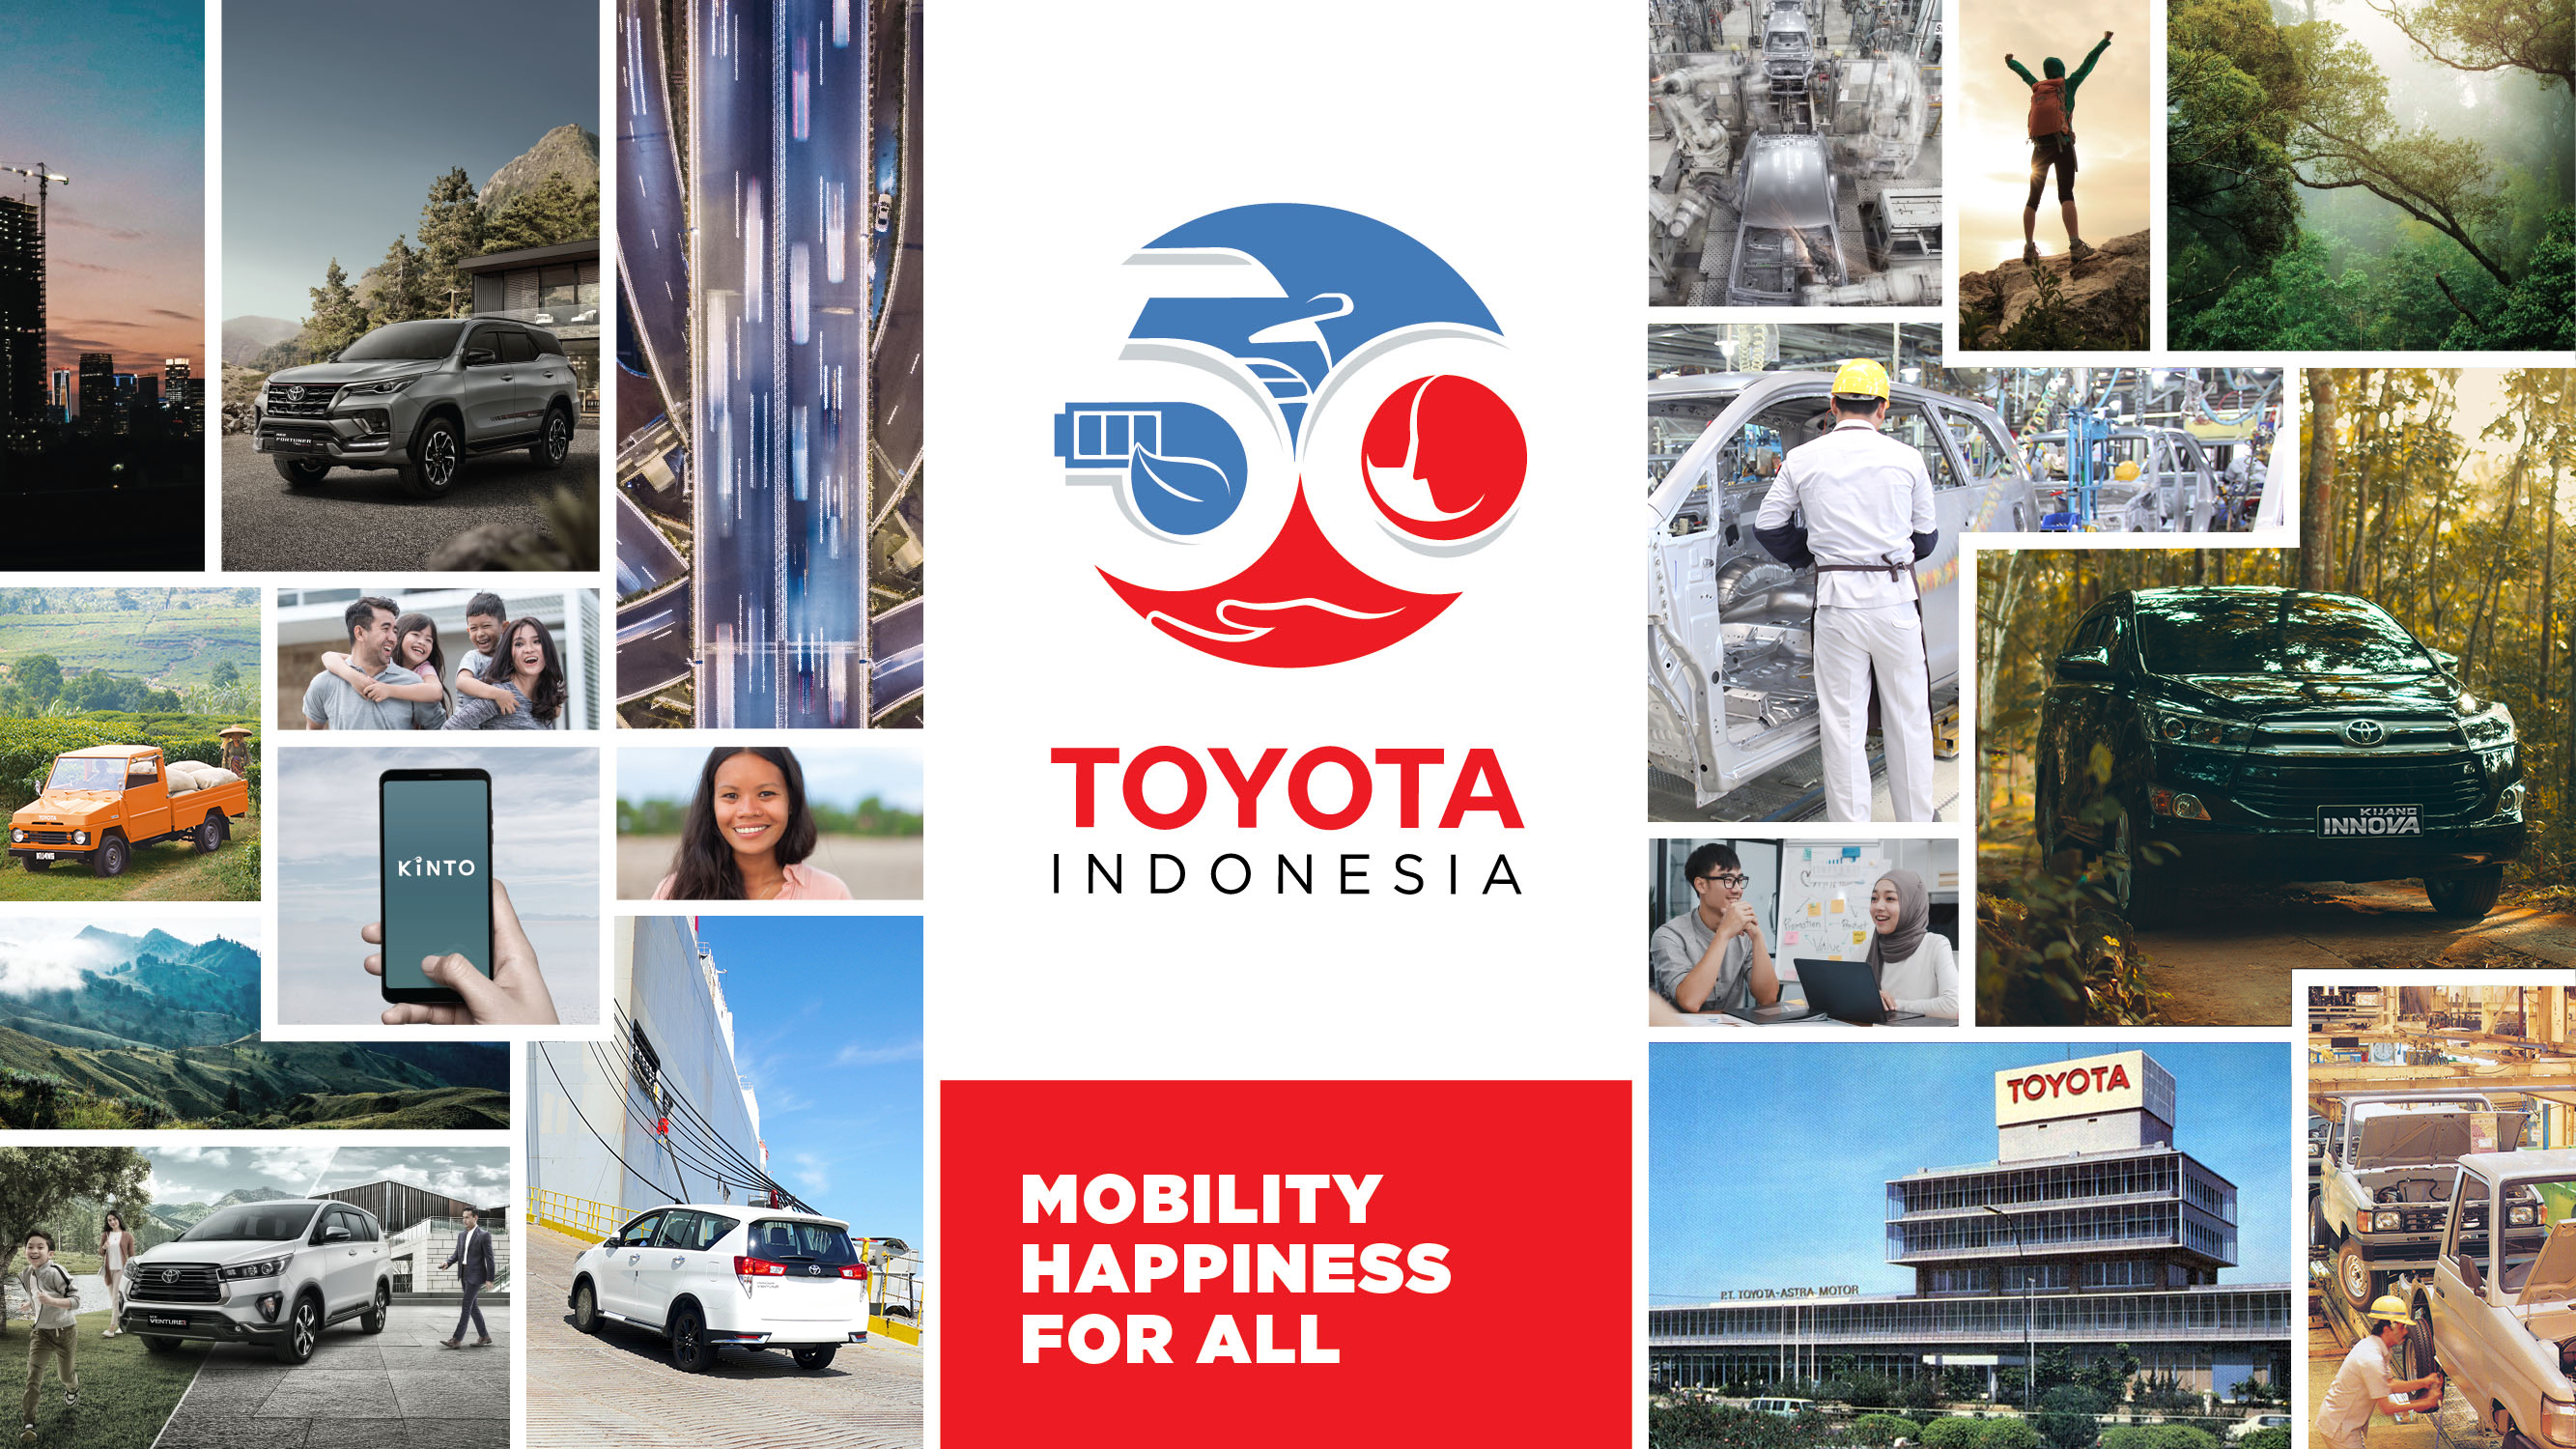 50th of Toyota in Indonesia Committed To Present Mobility Happiness for All